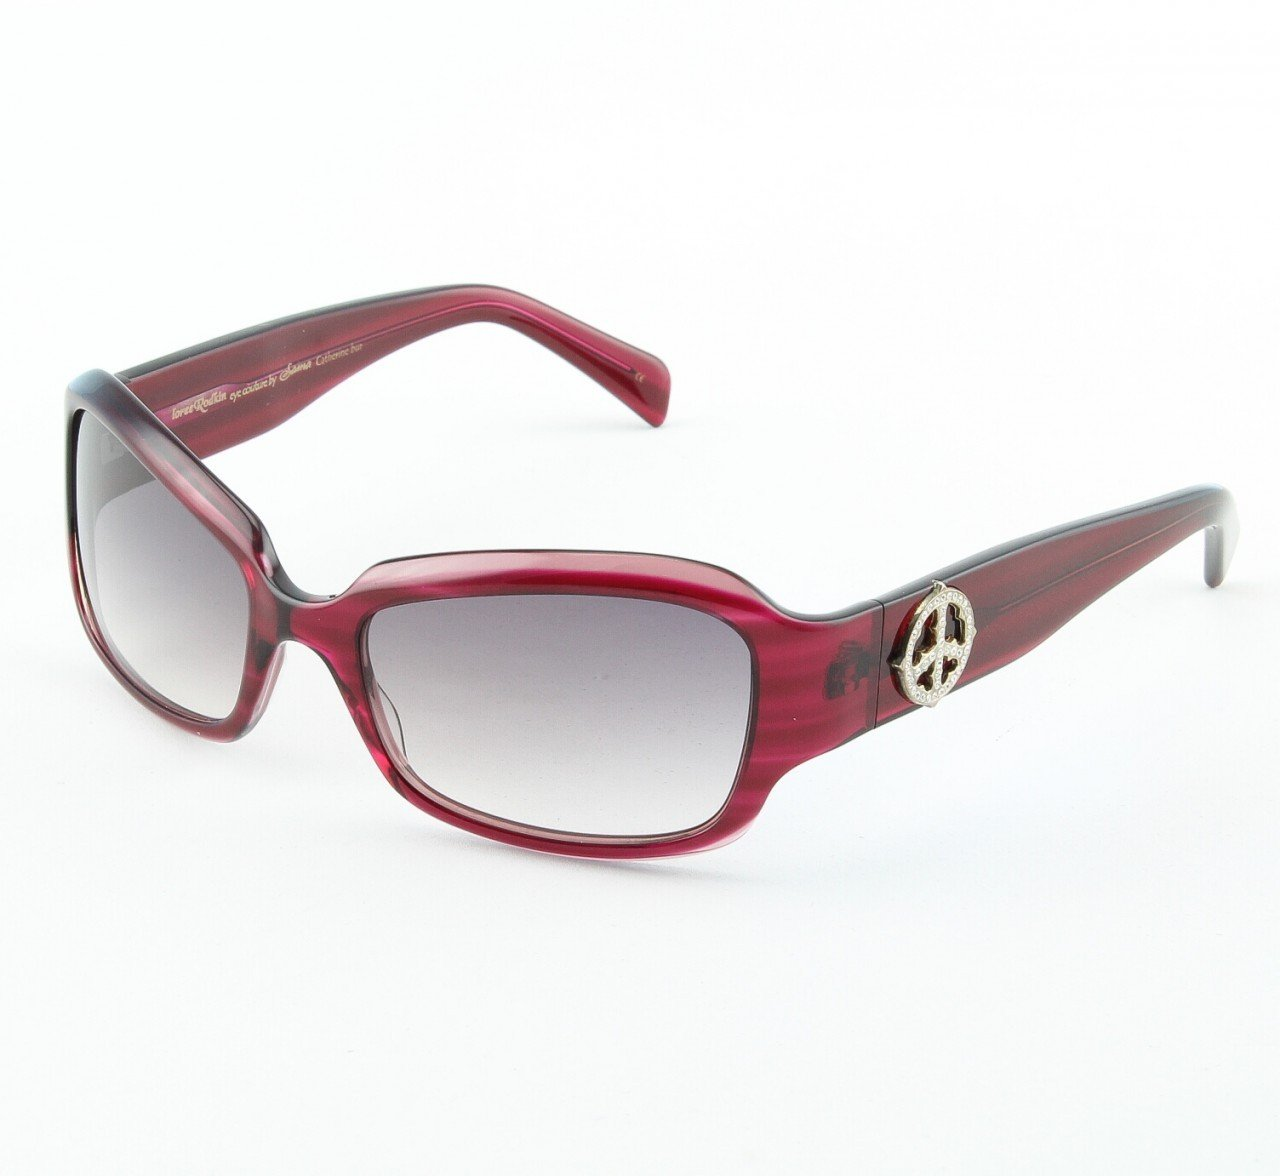 Loree Rodkin Catherine Sunglasses Burgundy w/ Gradient Lenses, Sterling Silver, Crystals